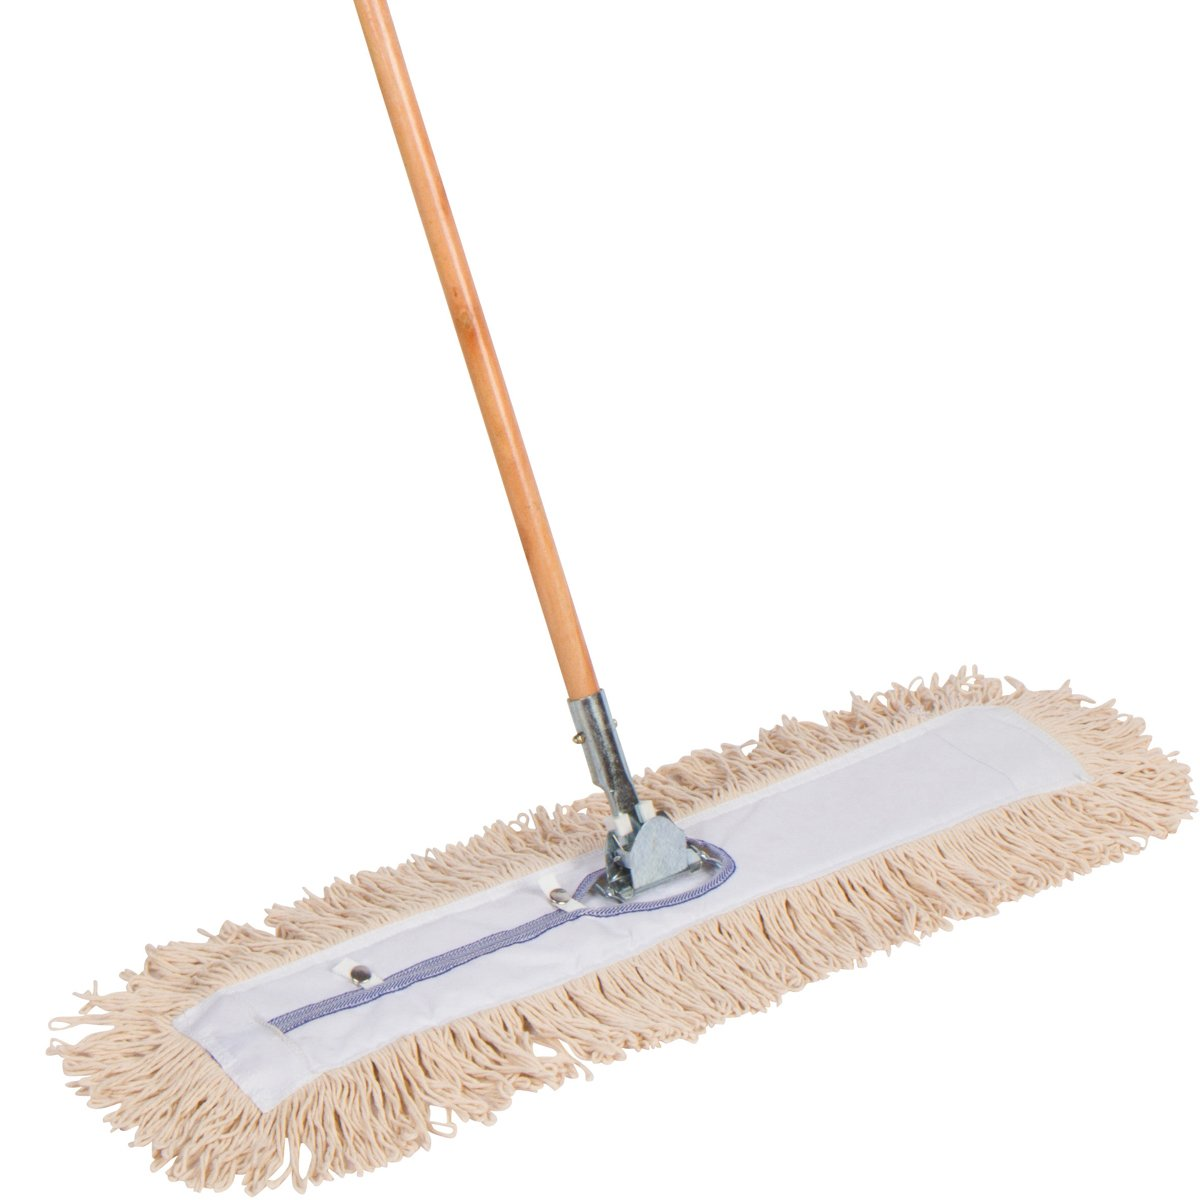 American Market Commercial Strength Cotton Dust Mop With Solid 63'' Wood Handle and Metal Frame. 30'' X 5'' Wide Mop Head with Looped Ends - Hardwood Floor Broom